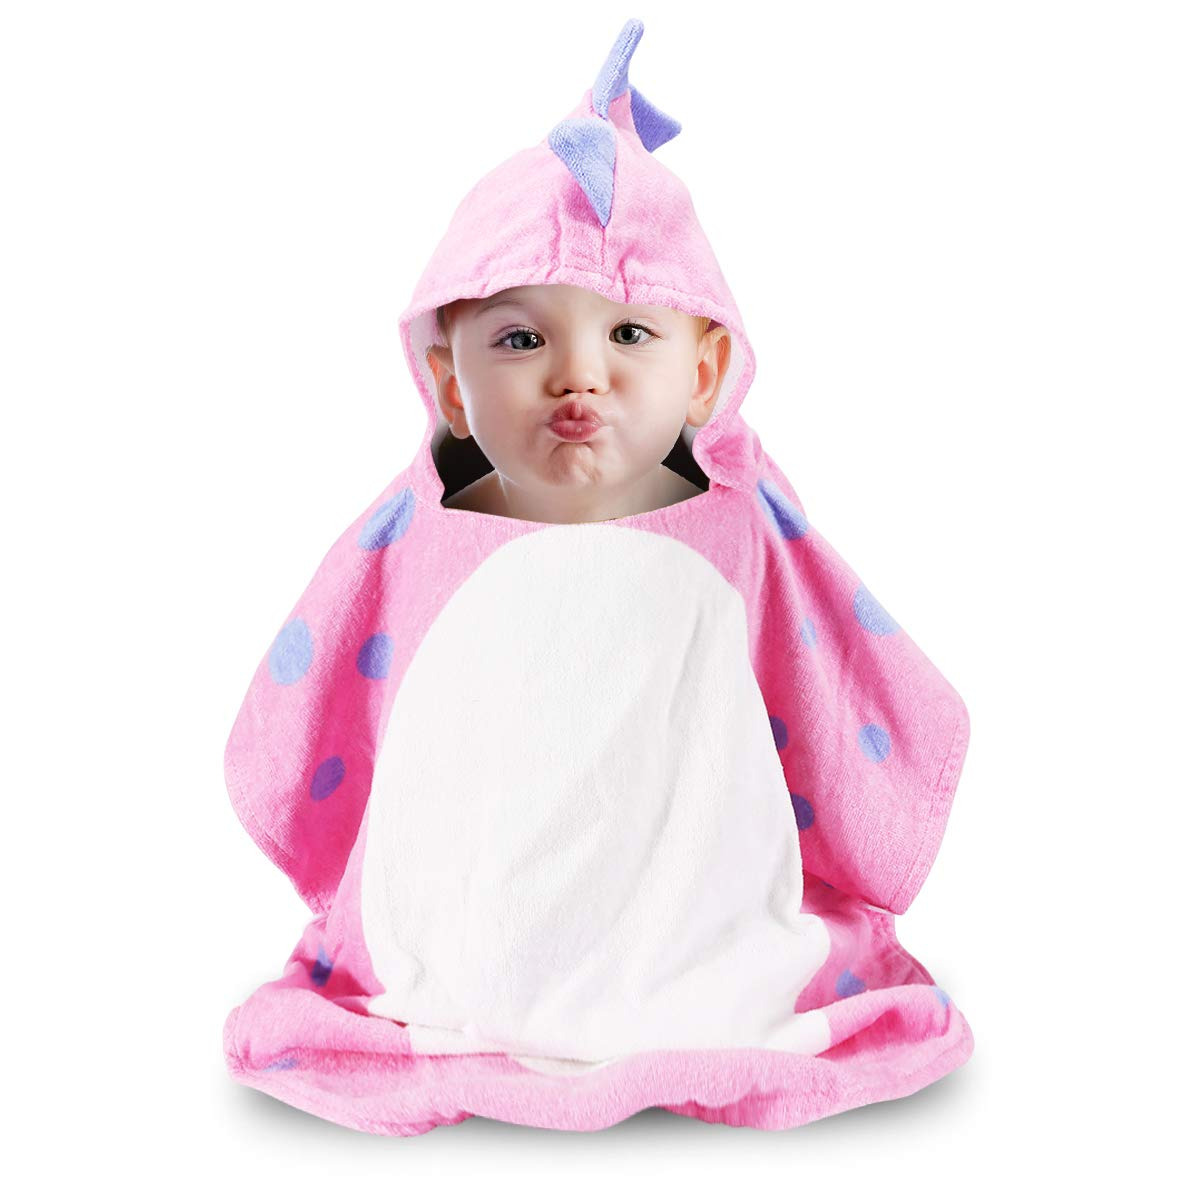 1 pcs,Pink Soft,Light Cotton Beach Towel for Age 1-5 Years Toddlers and Children with Cute Animal Design,Multi-use for Bath//Shower//Pool//Swim//Baby Girl Gift Photo Shoot Props Hooded Baby Towel